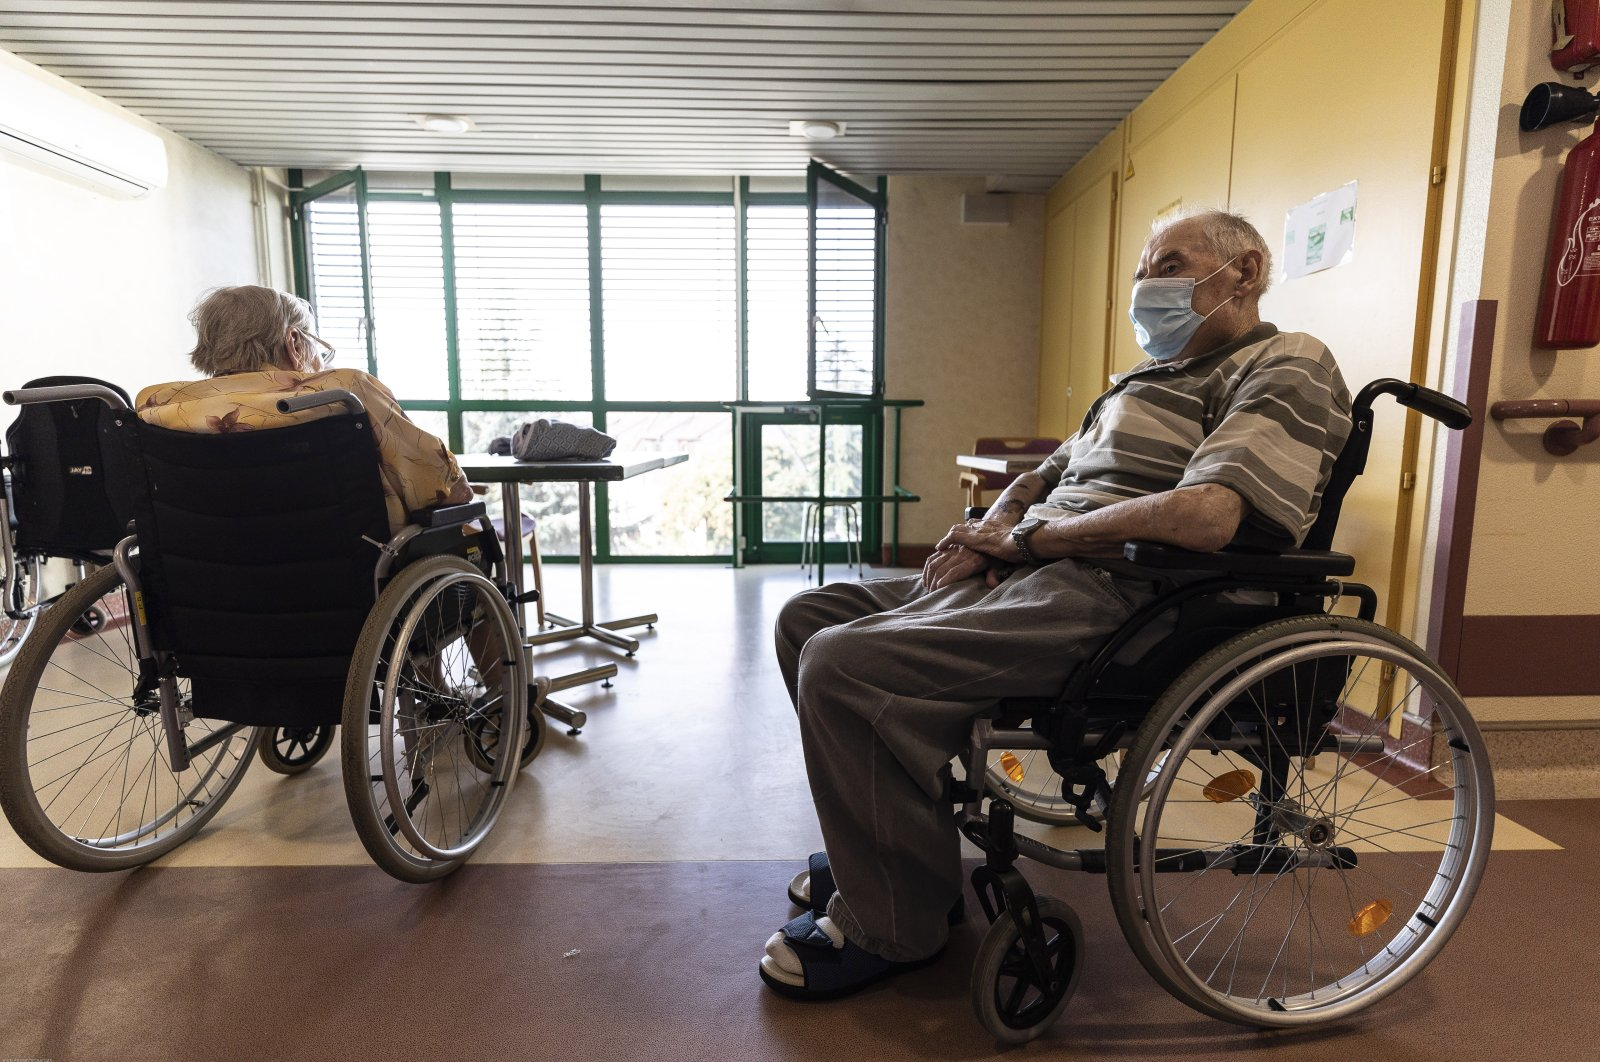 Elderly people in wheelchairs sit at a nursing home in Strasbourg, France, Aug. 19, 2020. (AP Photo)